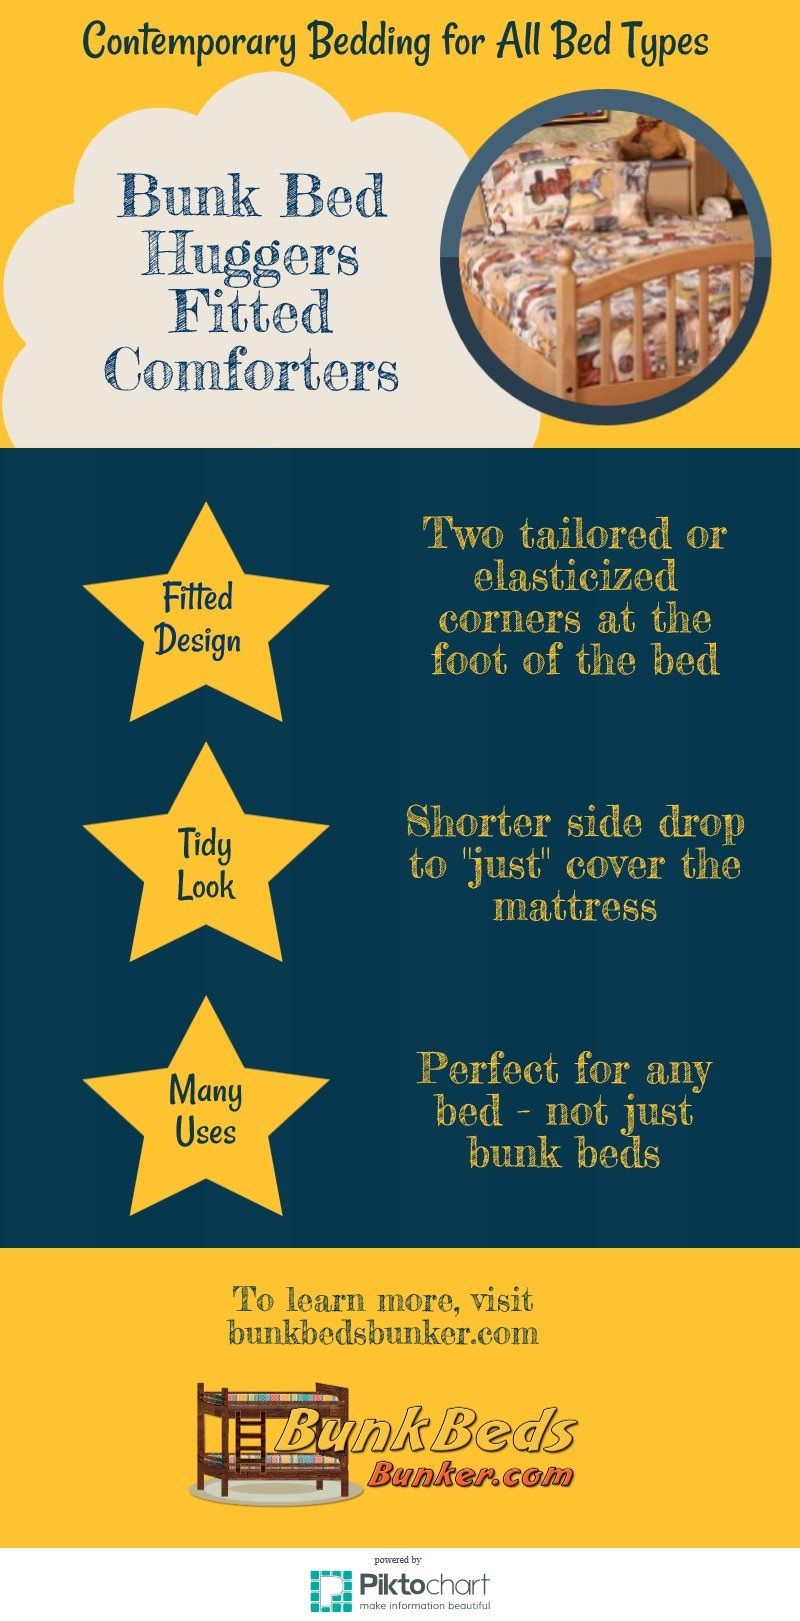 What Are Bunk Bed Huggers Fitted Comforters Bunk Beds Bunks Types Of Beds